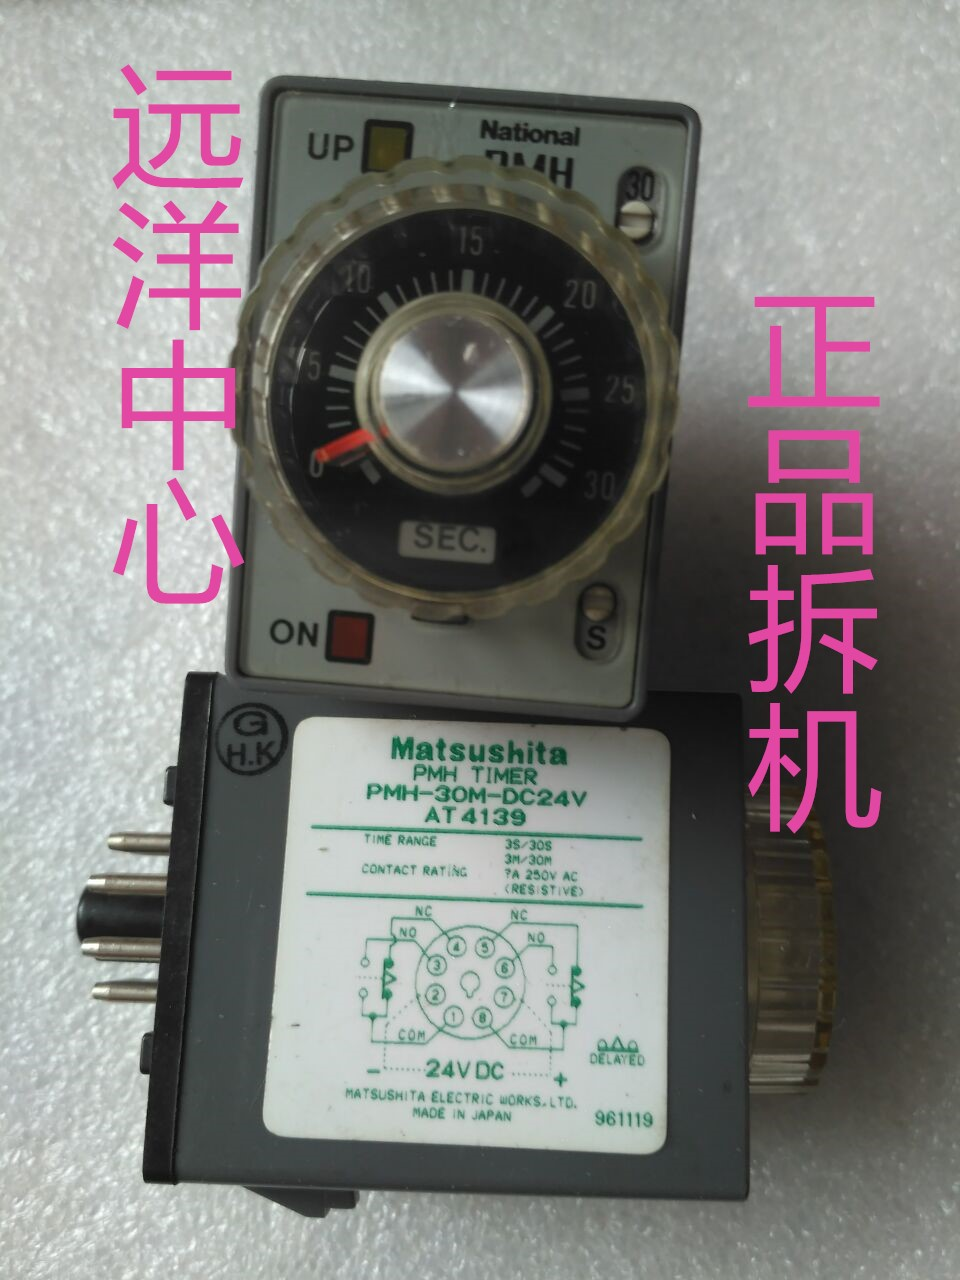 PMH-30M-DC24V AT4139 24V